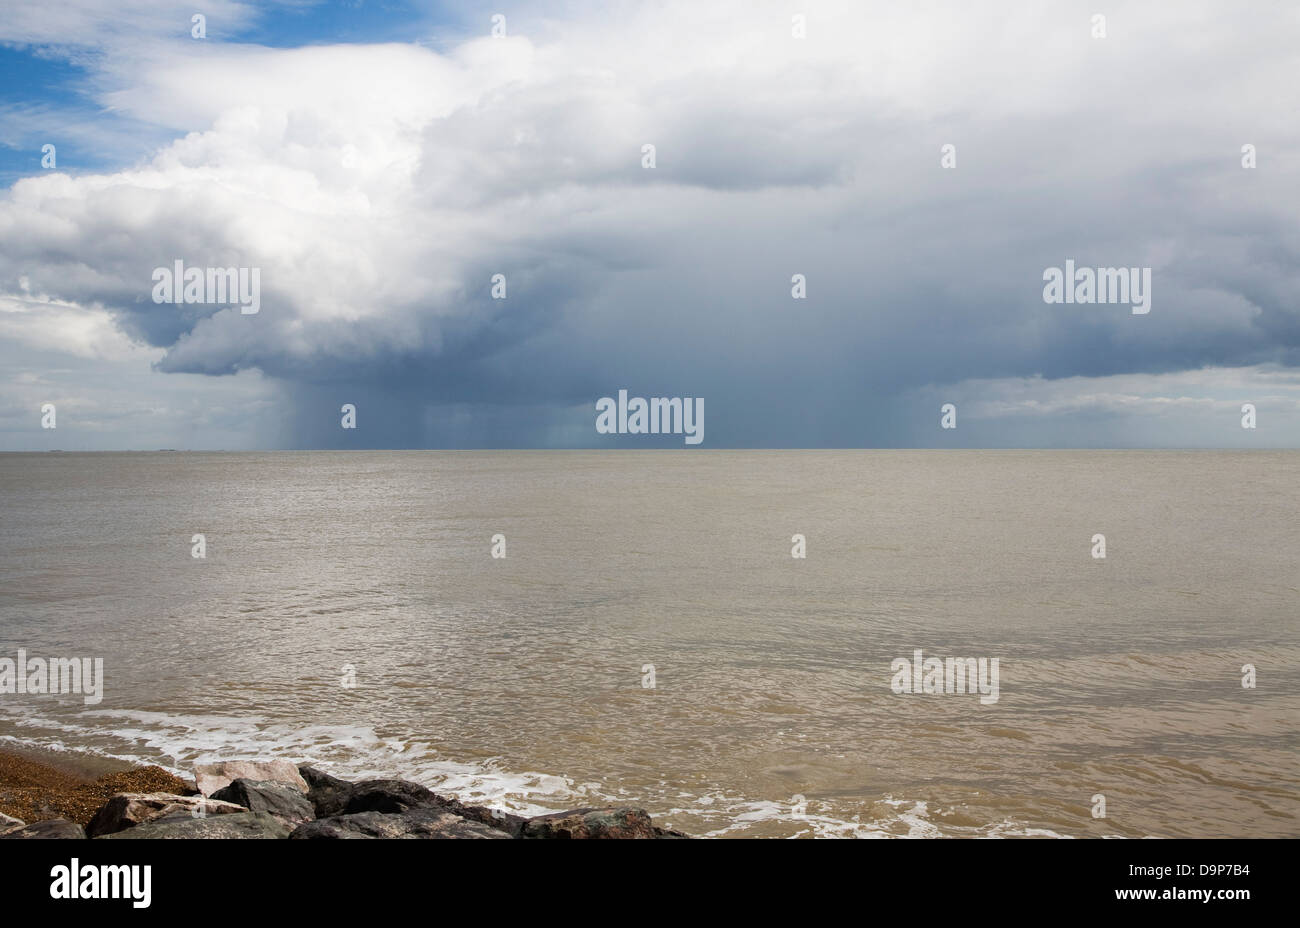 Heavy rain showers falling on sea from nimbocumulus cloud Orford Ness, North Sea, Suffolk coast, England - Stock Image